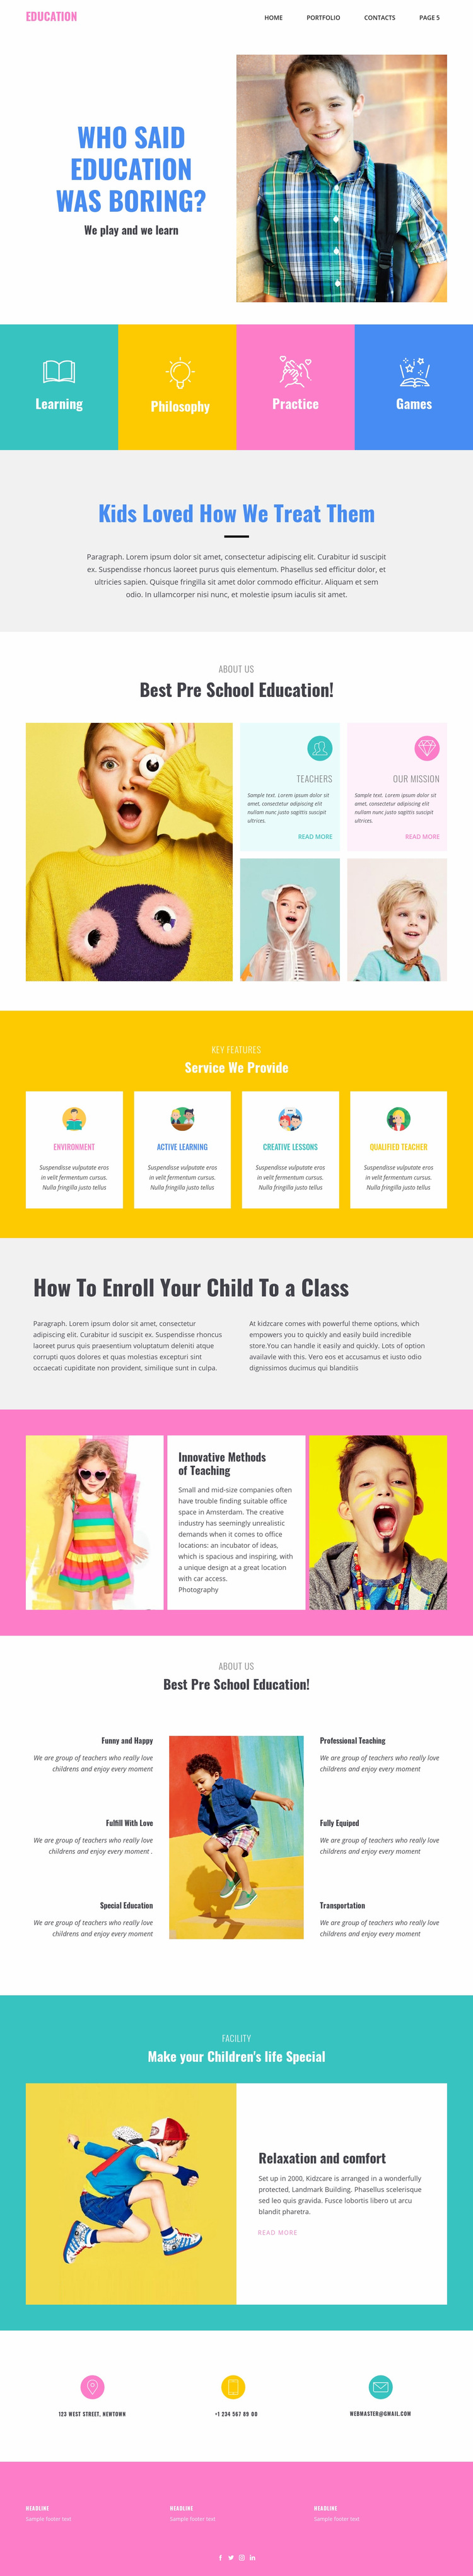 Fun of learning in school Web Page Design